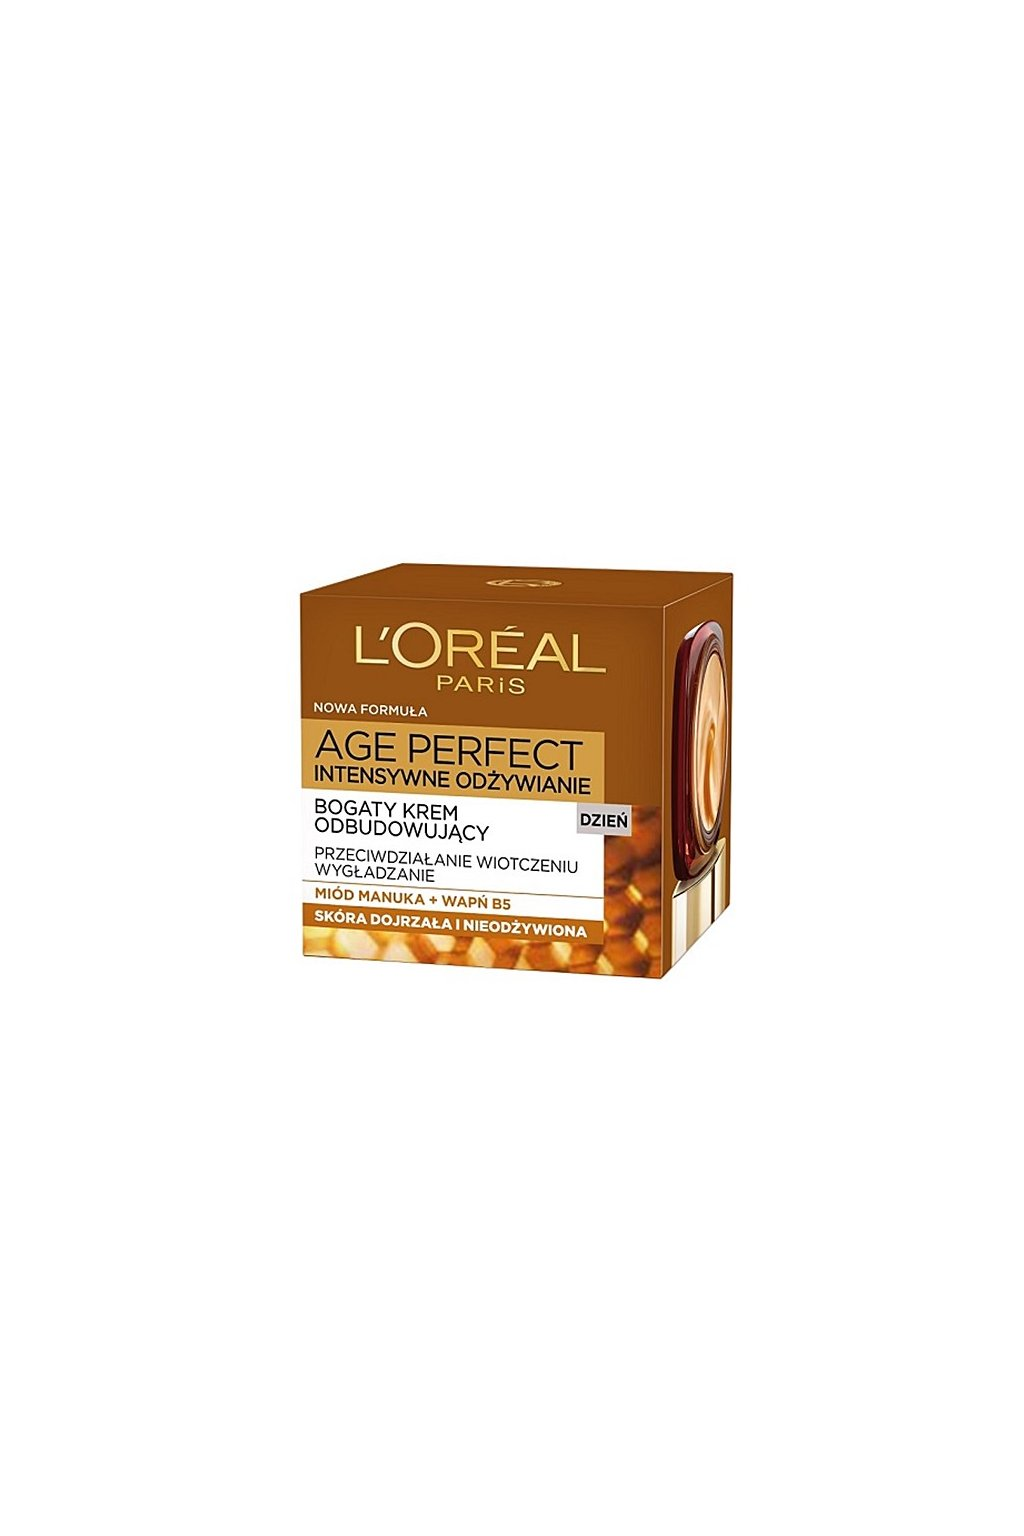 LOREAL AGE PERFECT regenerujici denni krem 60+ 50ml